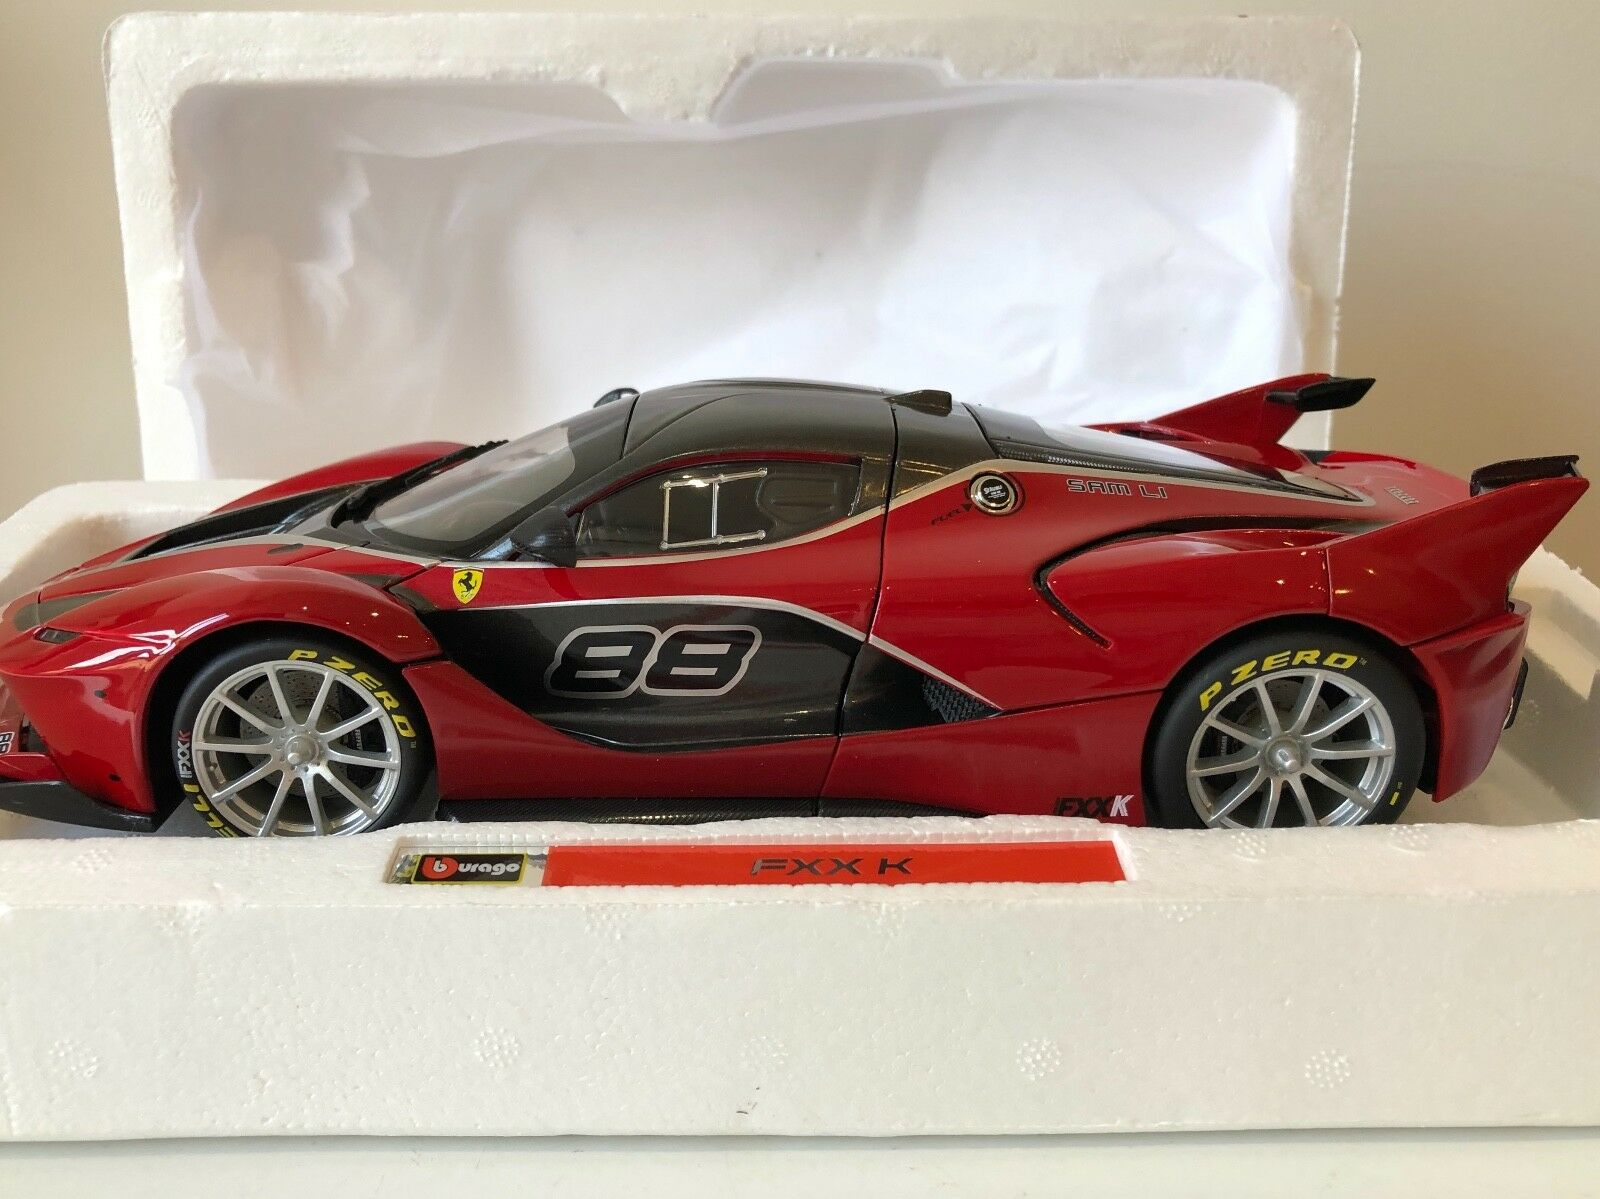 Burago 1 18 - Ferrari FXX-k red black range (signature series) - new